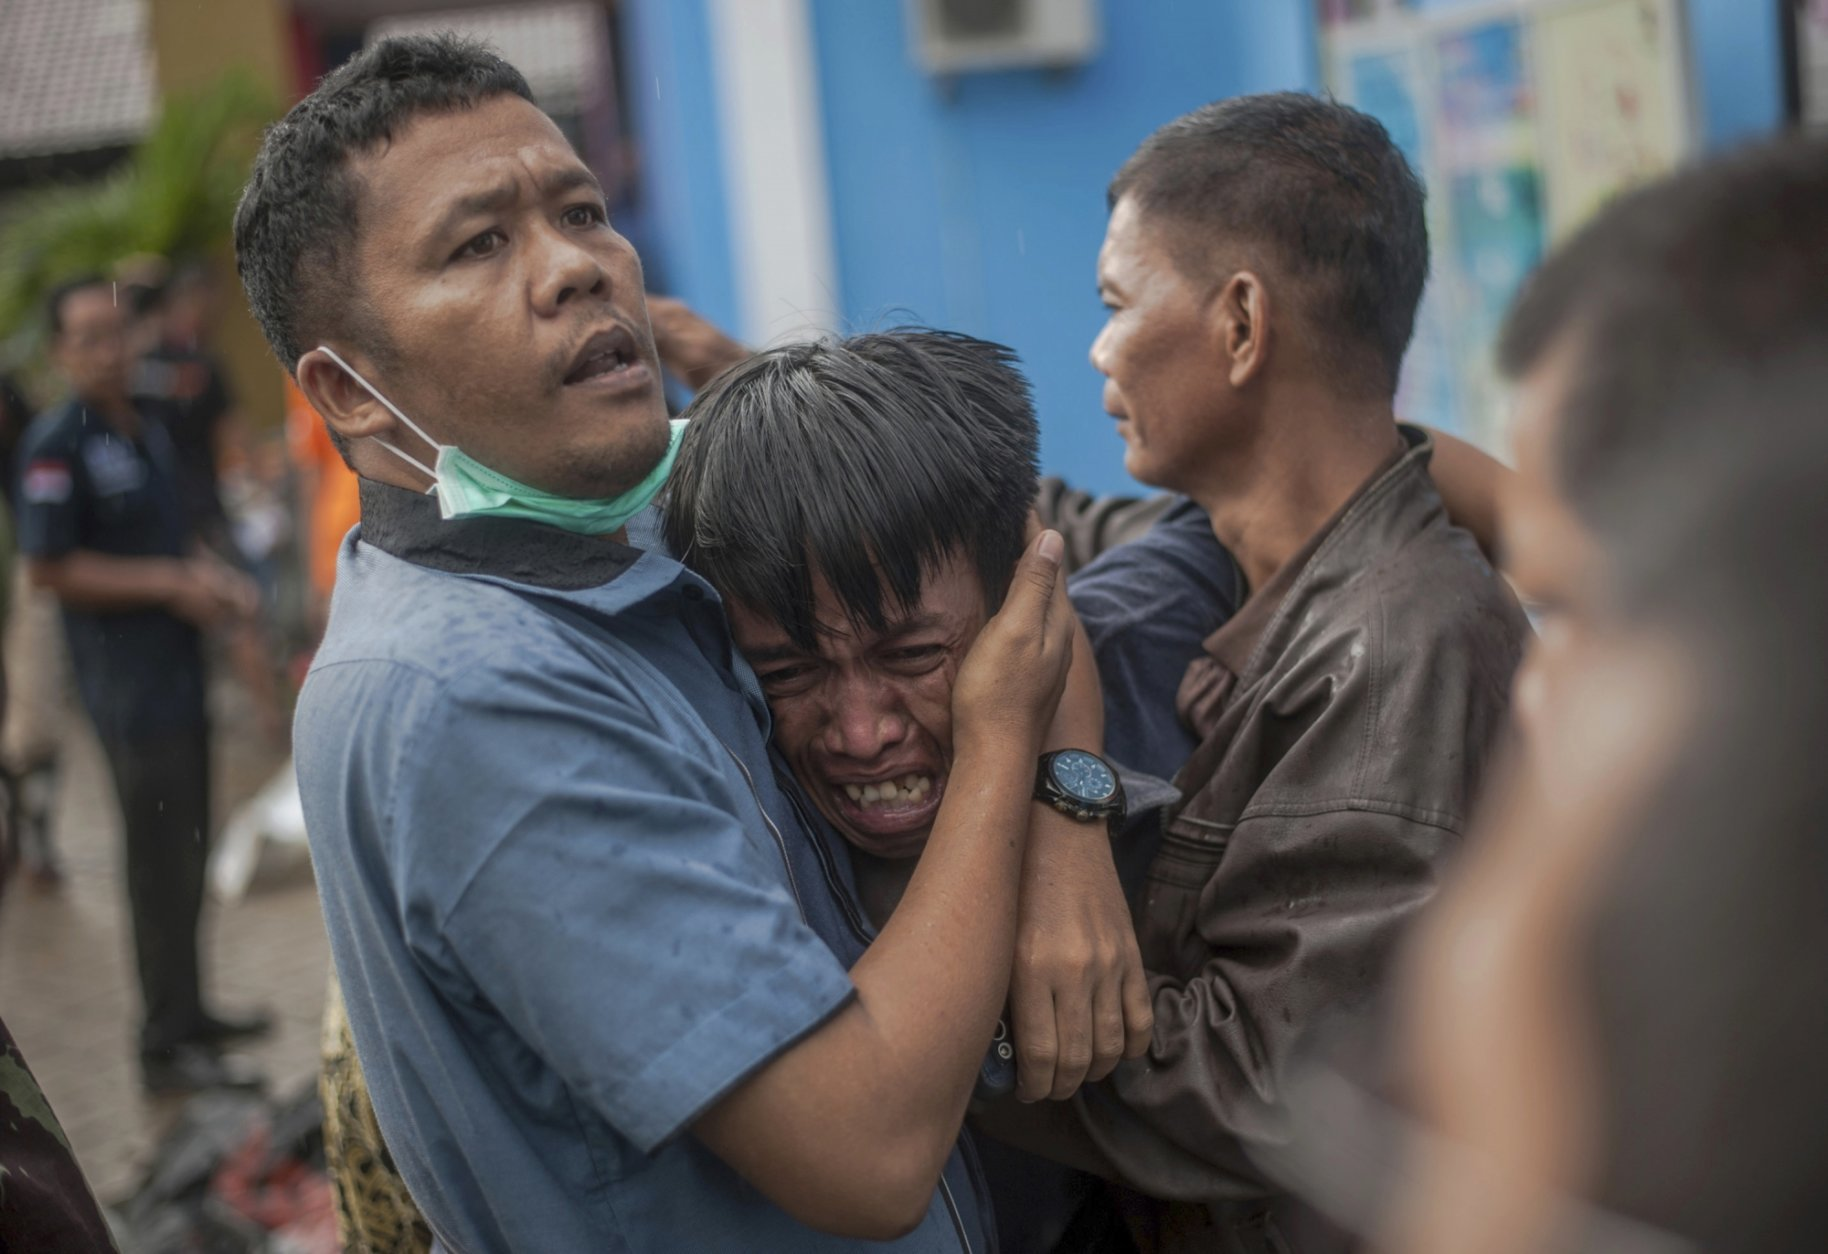 In this Sunday, Dec. 23, 2018, photo, a man reacts after identifying his relative among the bodies of tsunami victims in Carita, Indonesia. The tsunami that hit the coasts of Indonesian islands along the Sunda Strait was not big but it was destructive. The waves smashed onto beaches in the darkness Saturday night without warning, ripping houses and hotels from their foundations in seconds and sweeping terrified concertgoers into the sea. (AP Photo/Fauzy Chaniago)